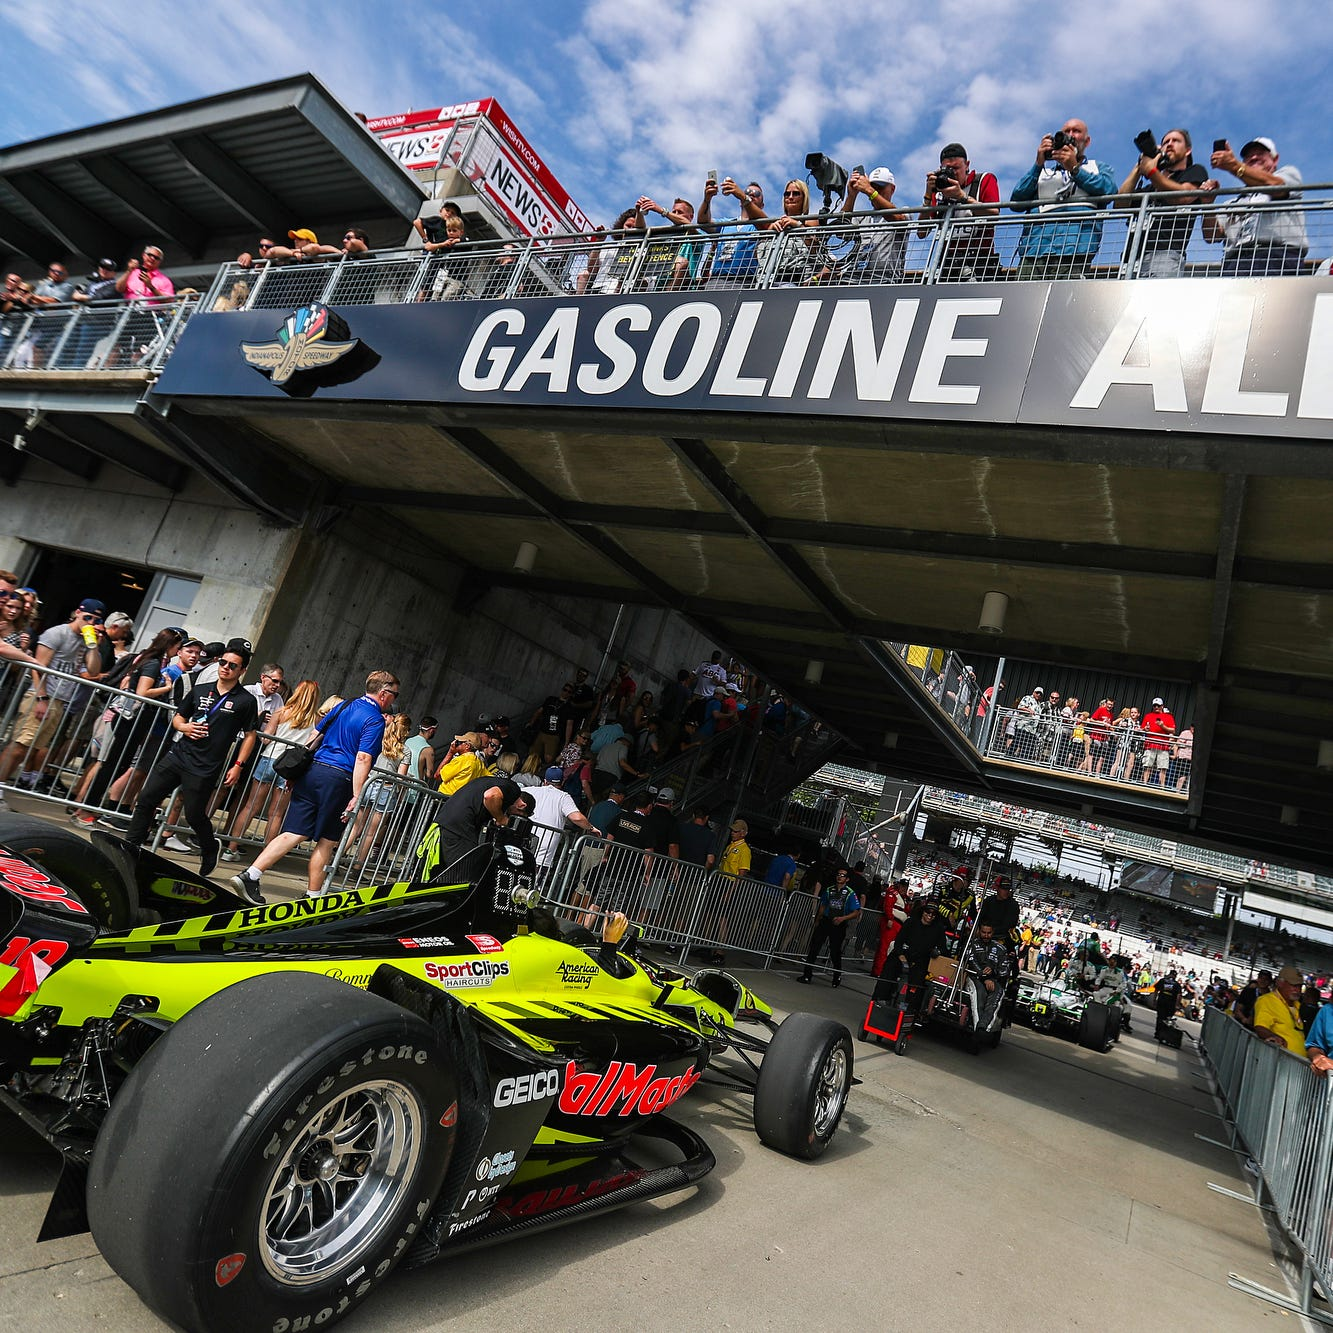 Indy 500 2019: Welcome to race day (we hope)